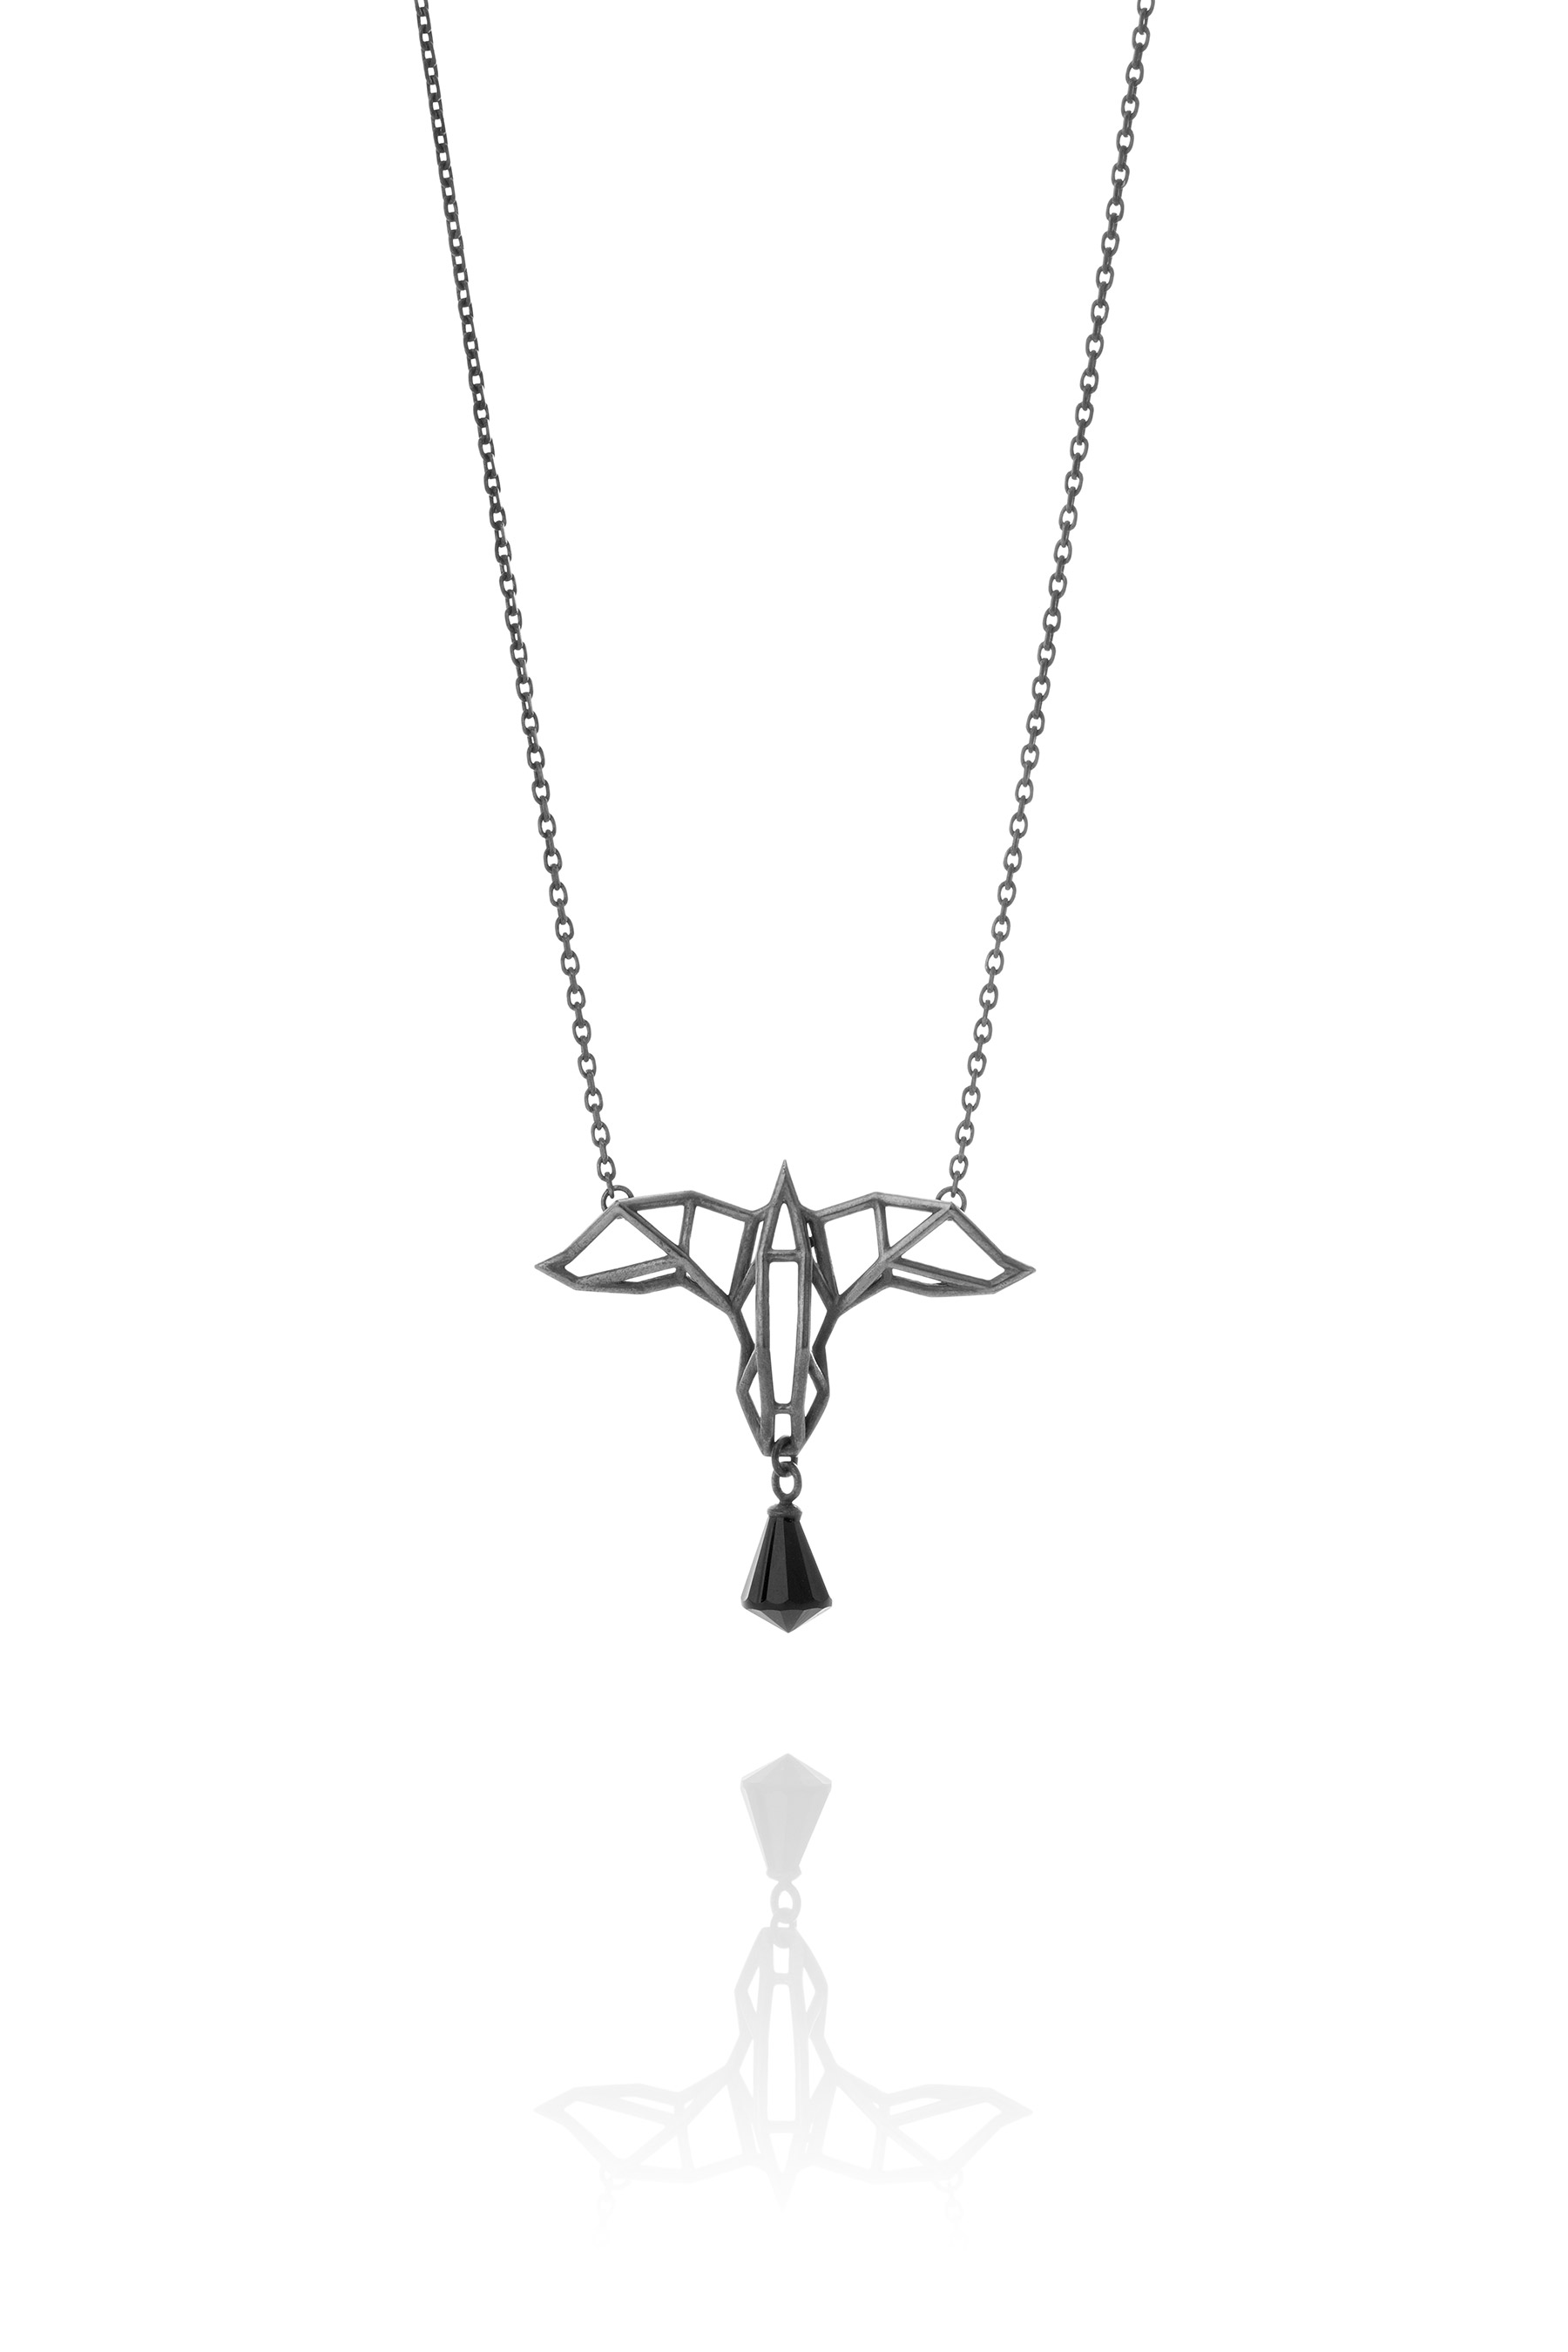 silver necklace necklaces black en c jewellery rhodium in onyx